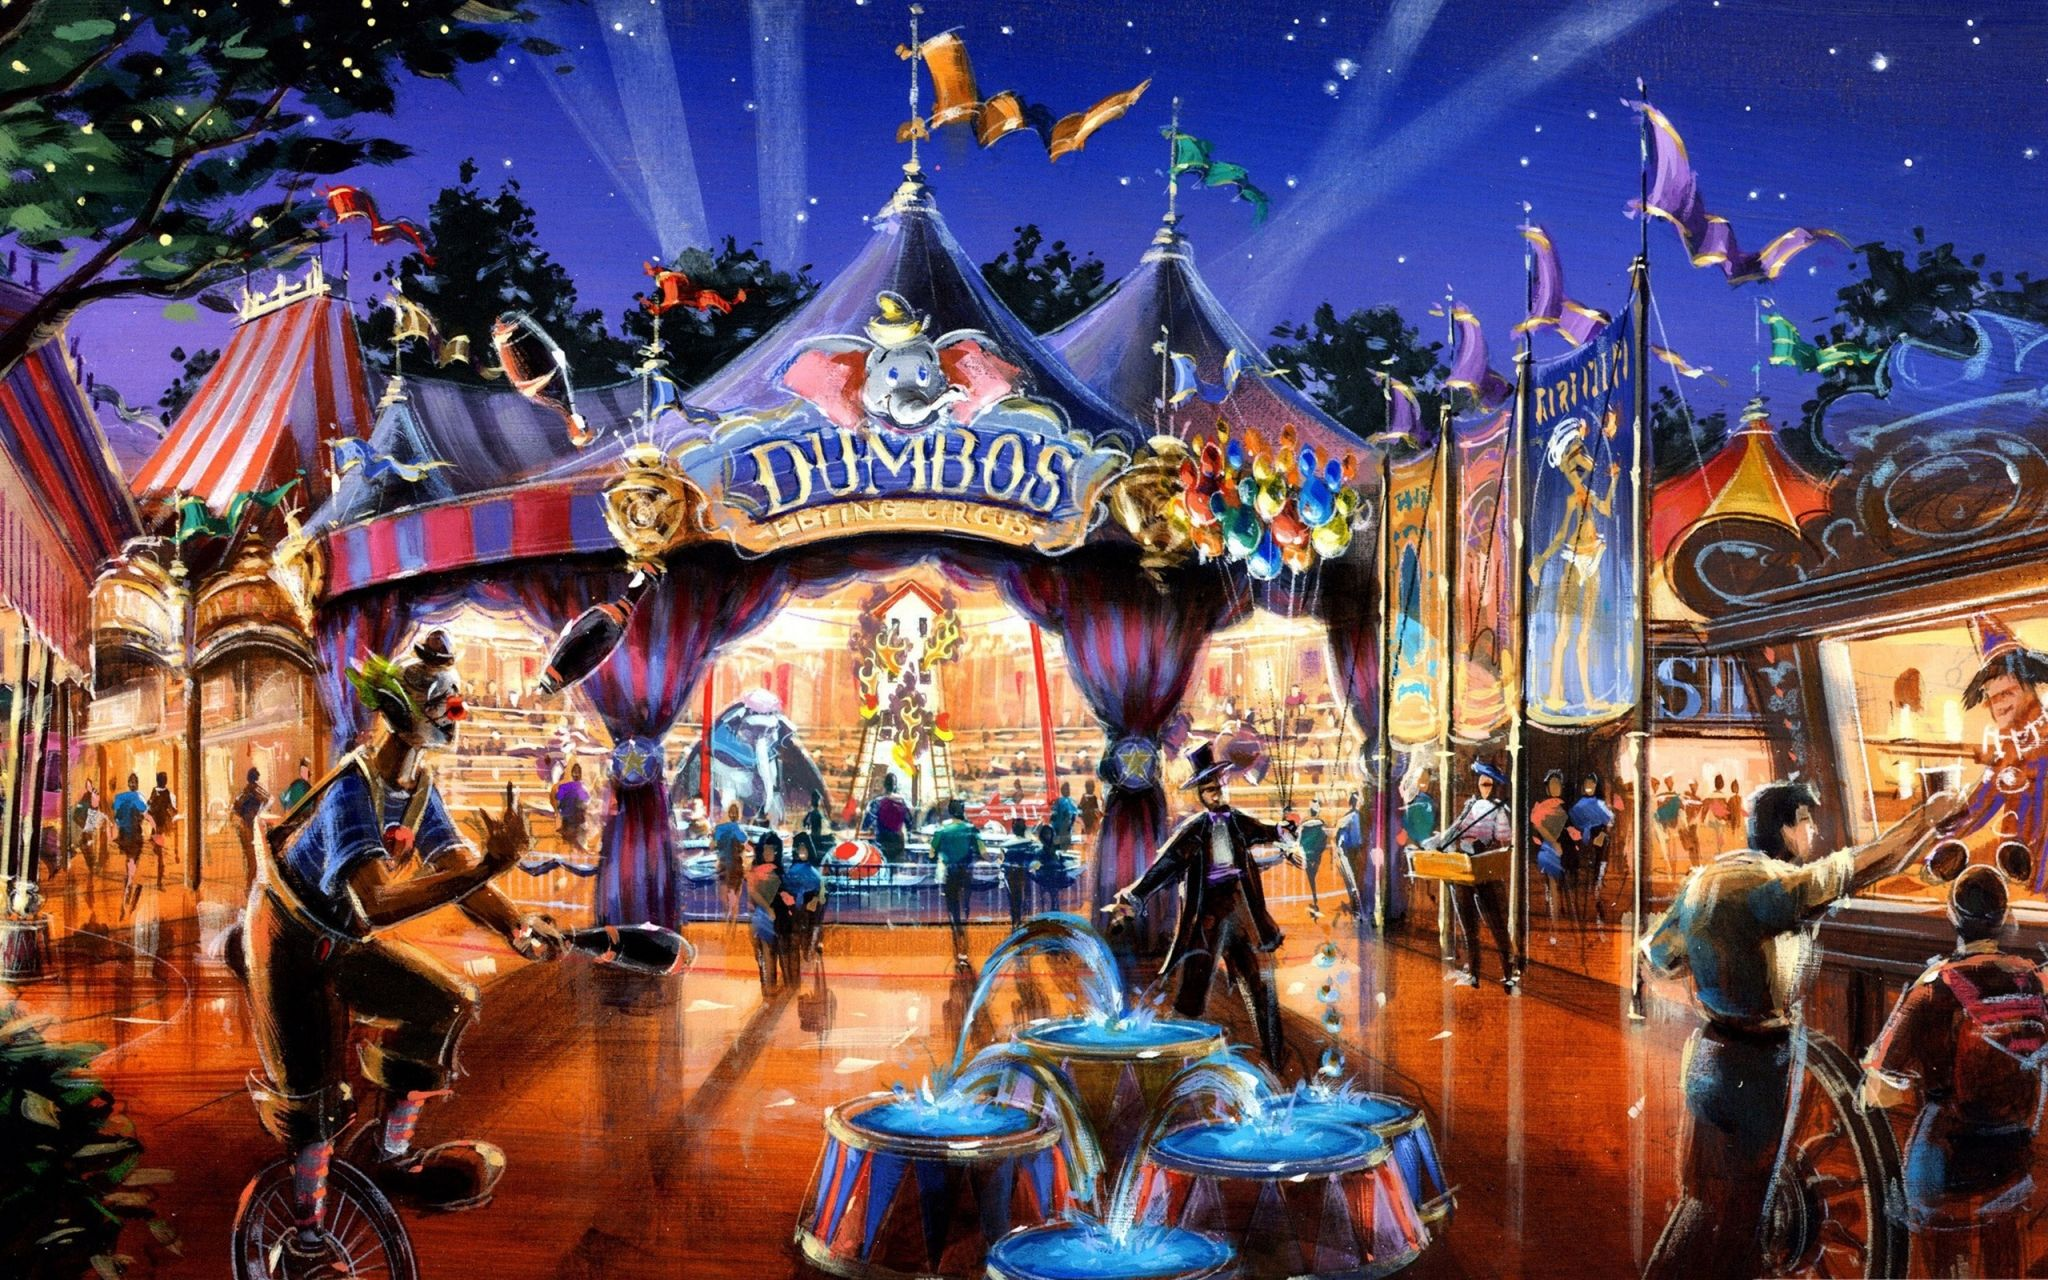 Disney Desktop Wallpaper Hd Wallpapers Disney Desktop Wallpaper Disney Concept Art Disney Characters Wallpaper